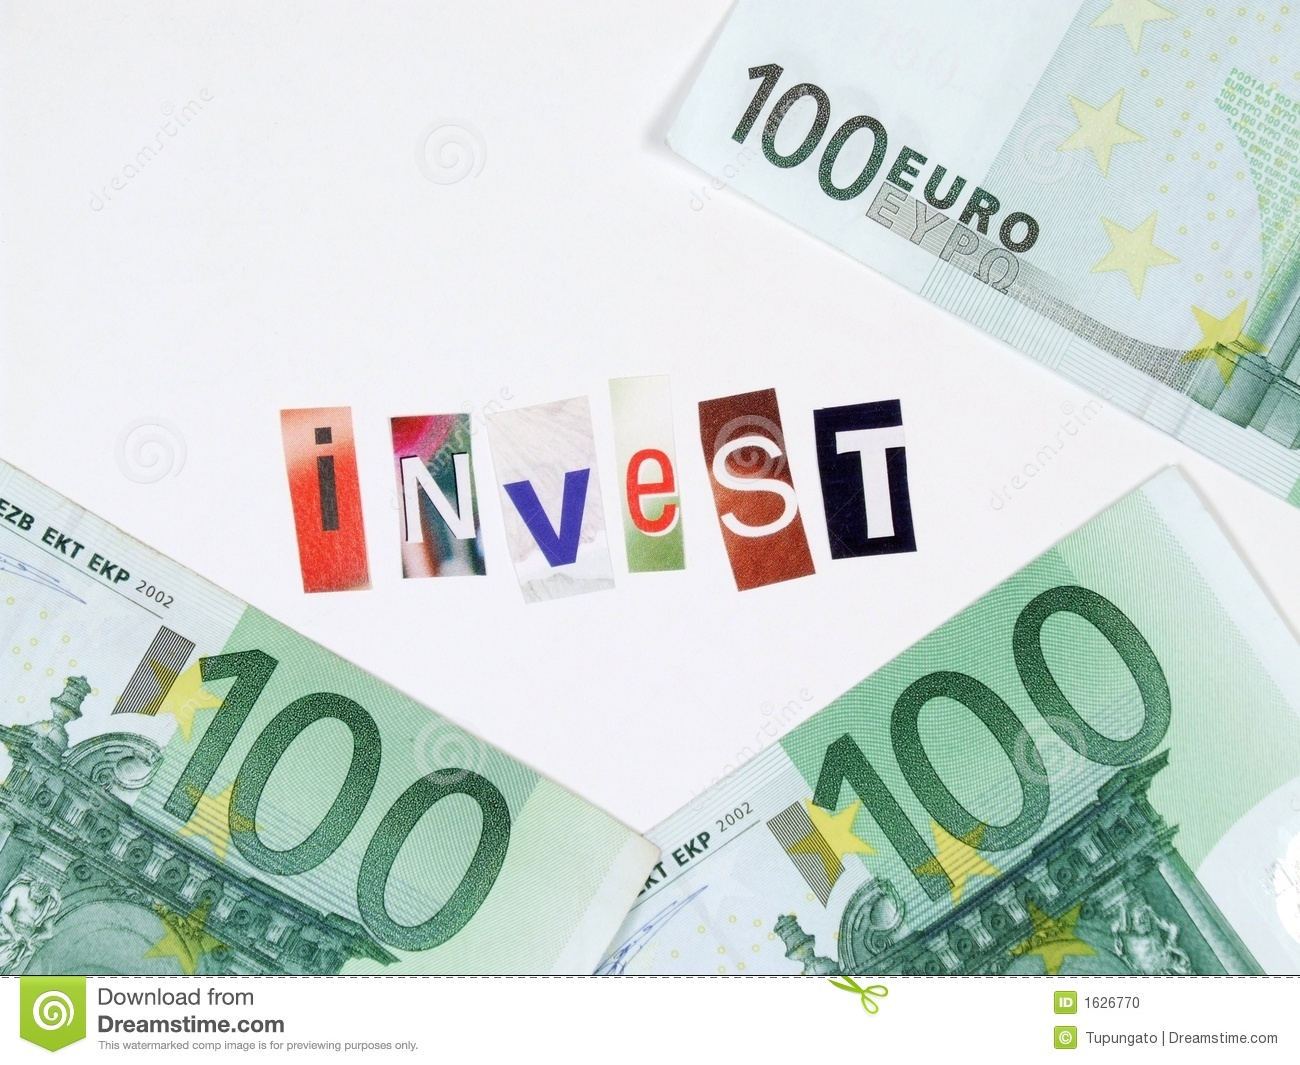 How to invest in the euro